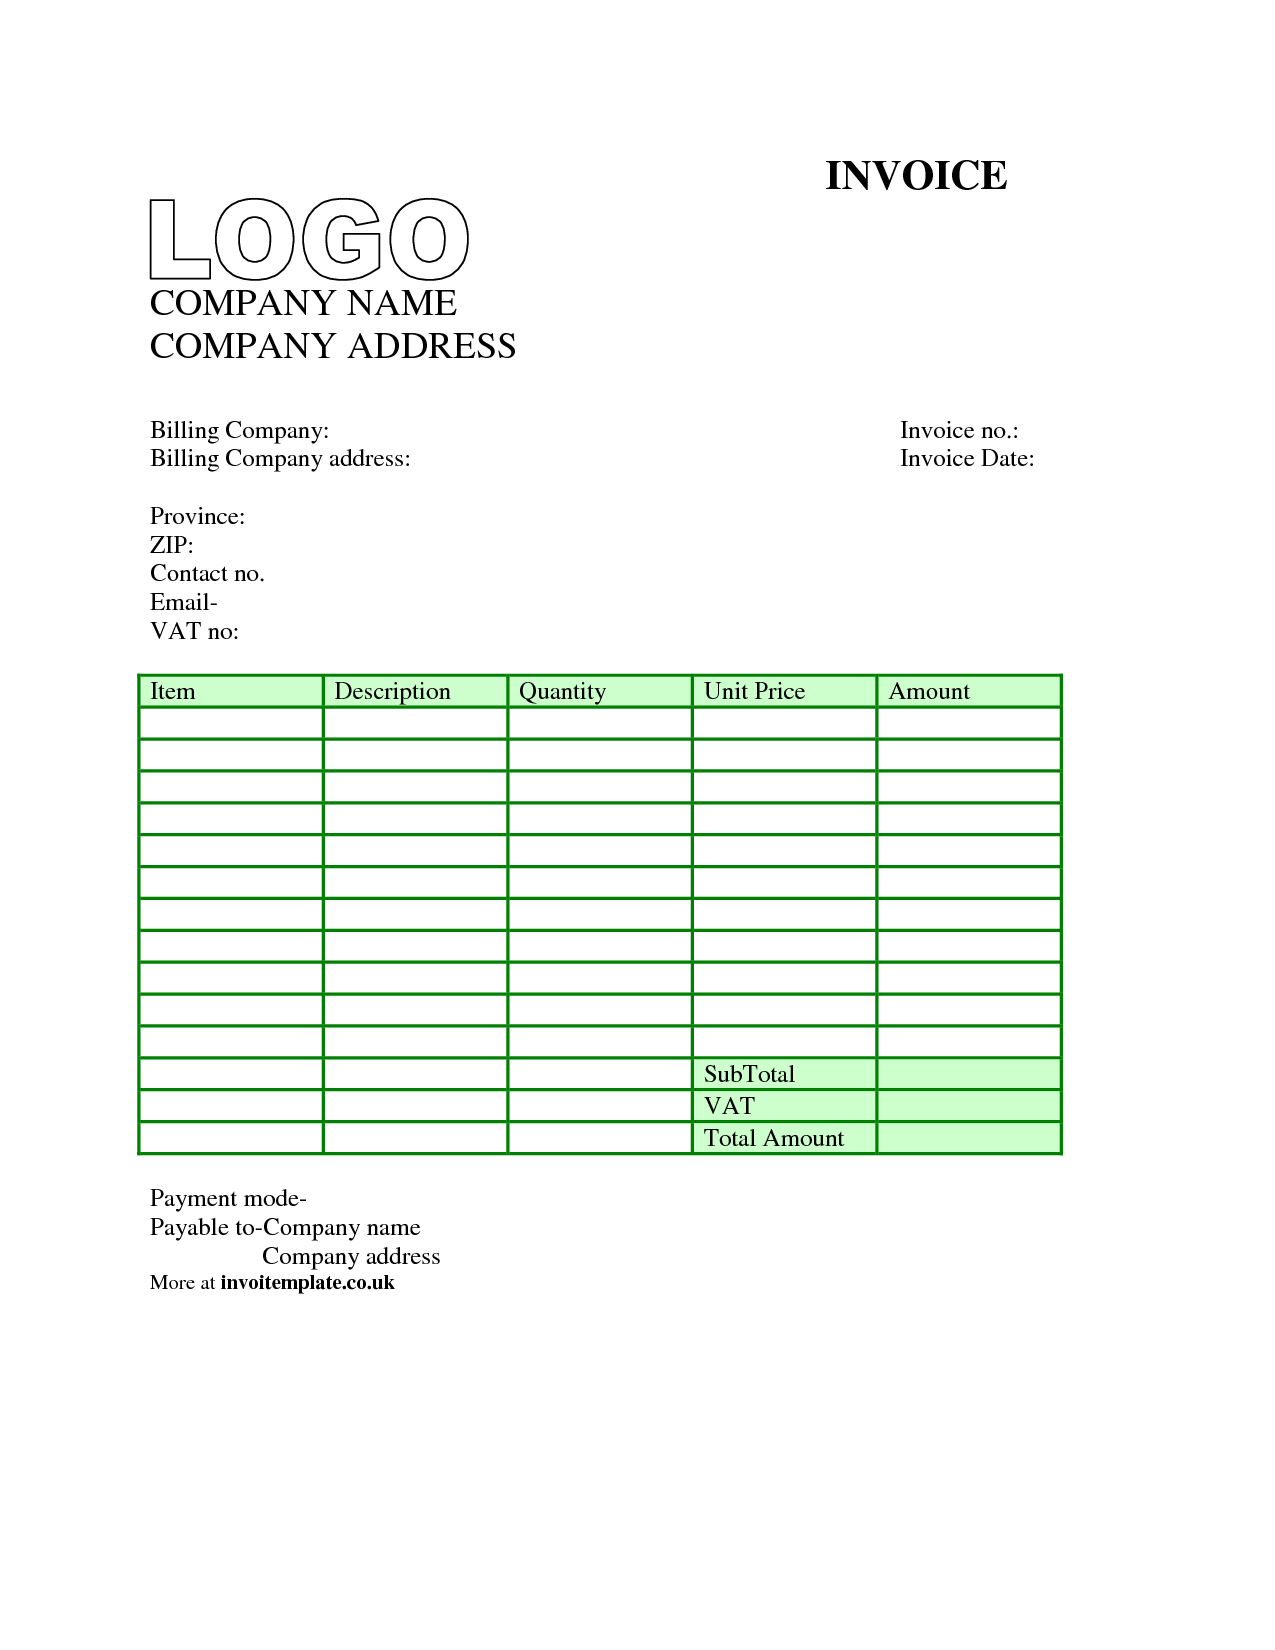 Bills Template Free and 100 Invoice Template for Excel 2010 Invoice Template